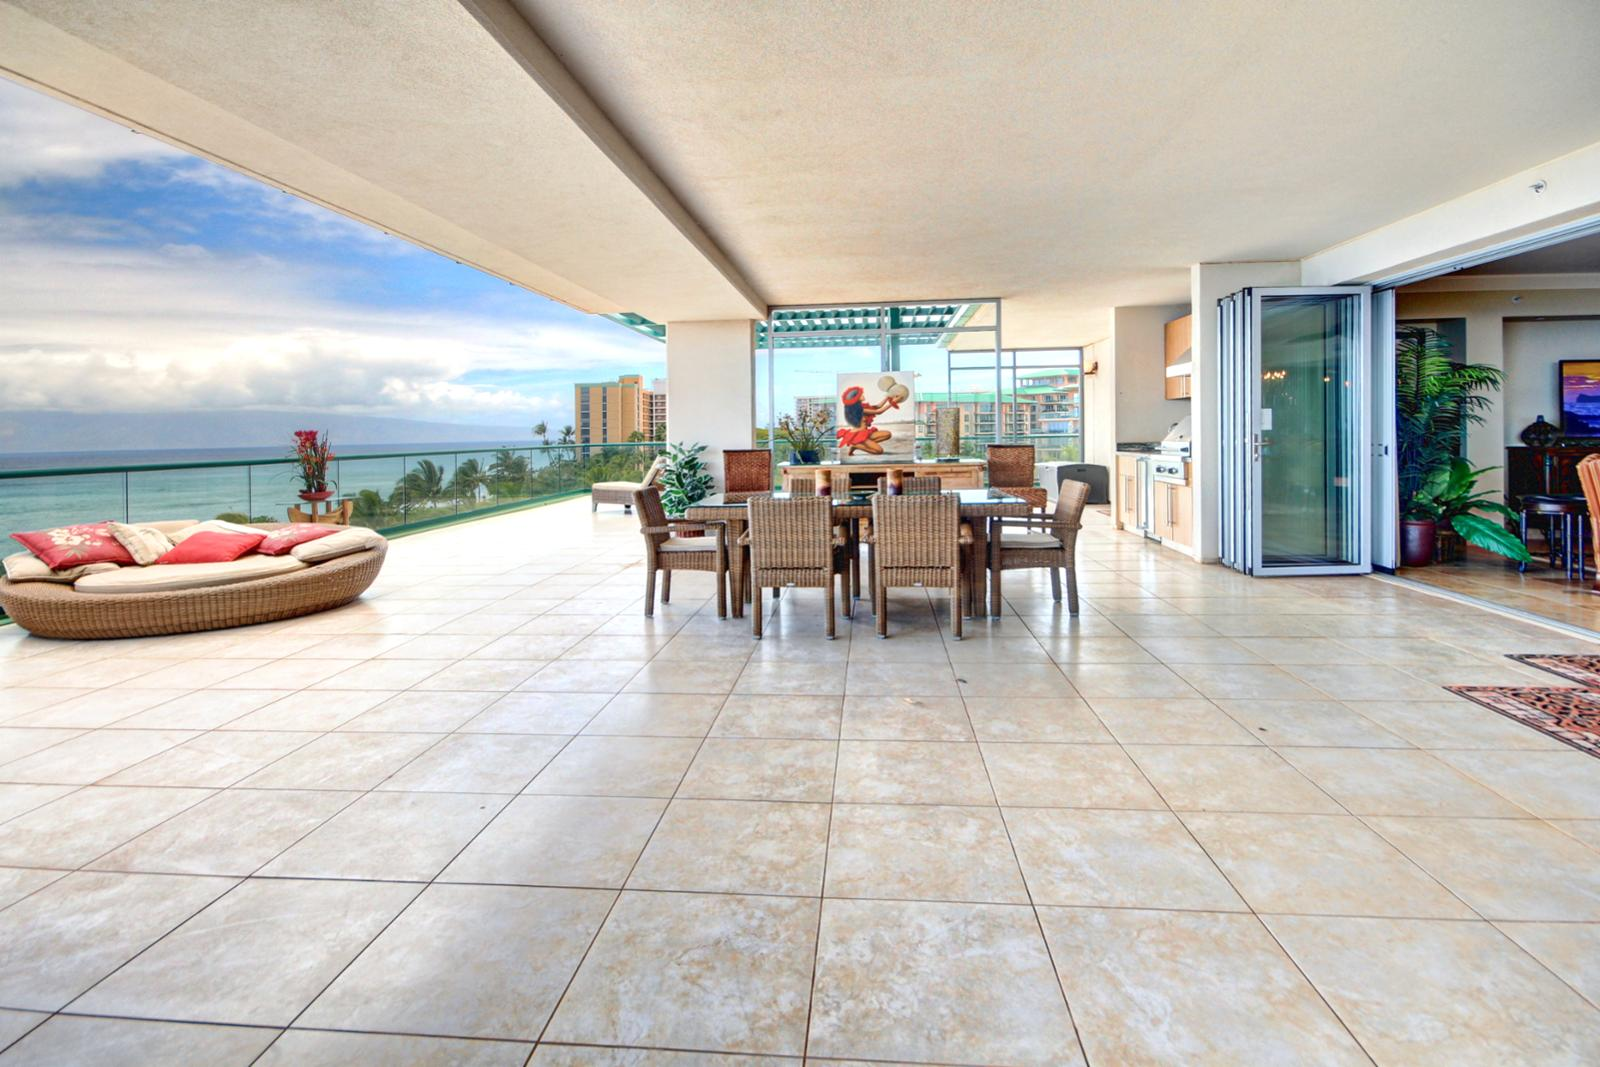 Expansive lanai that could host an intimate private dinner.